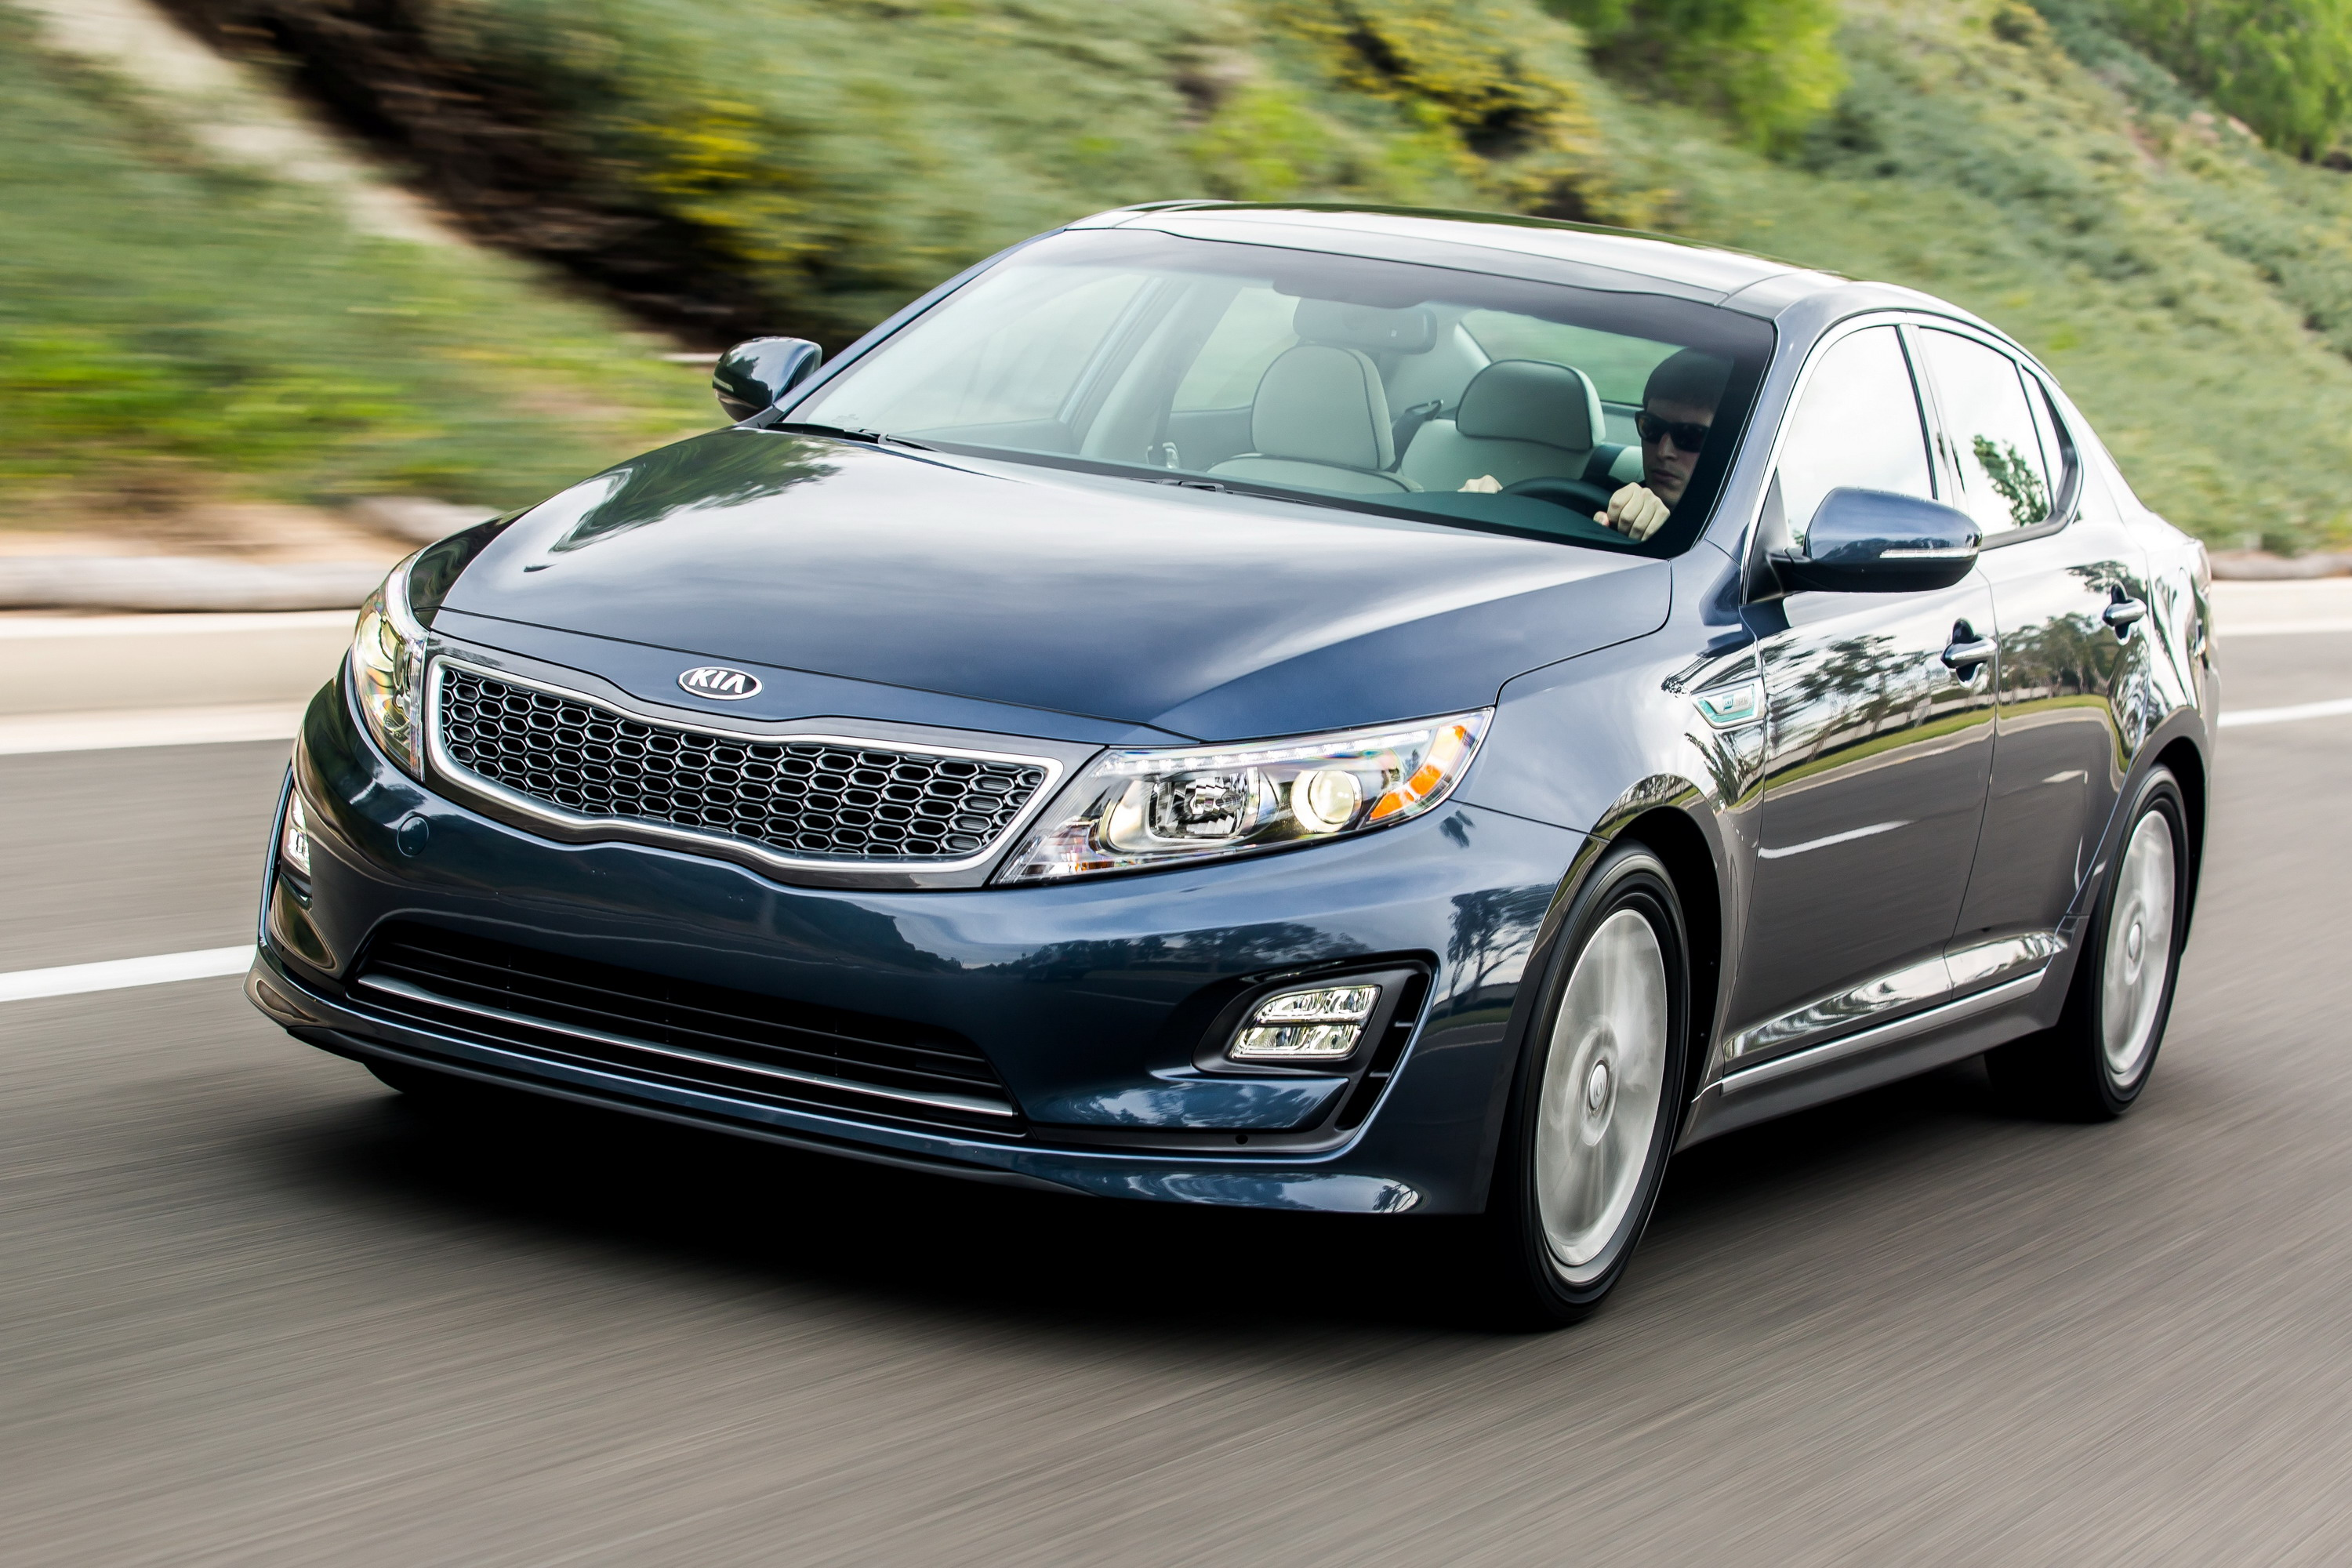 sx review test created car rapha l turbo reviews interior driving with kia optima road